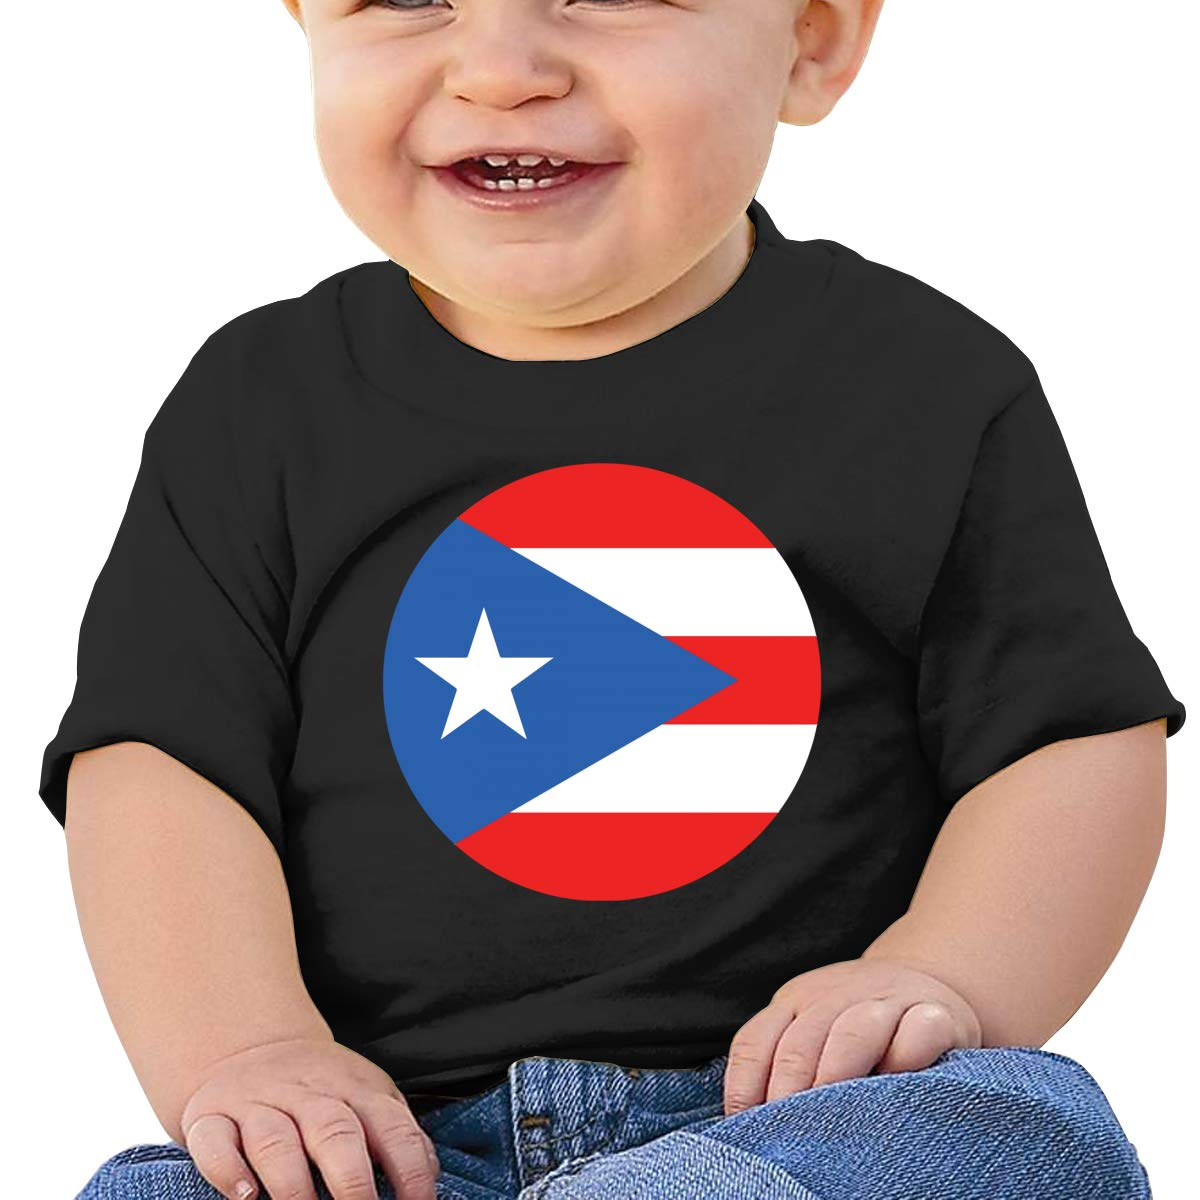 Puerto Rican Flag Baby T-Shirt Little Baby Cotton T Shirts Comfort Tops for 6M-2T Baby